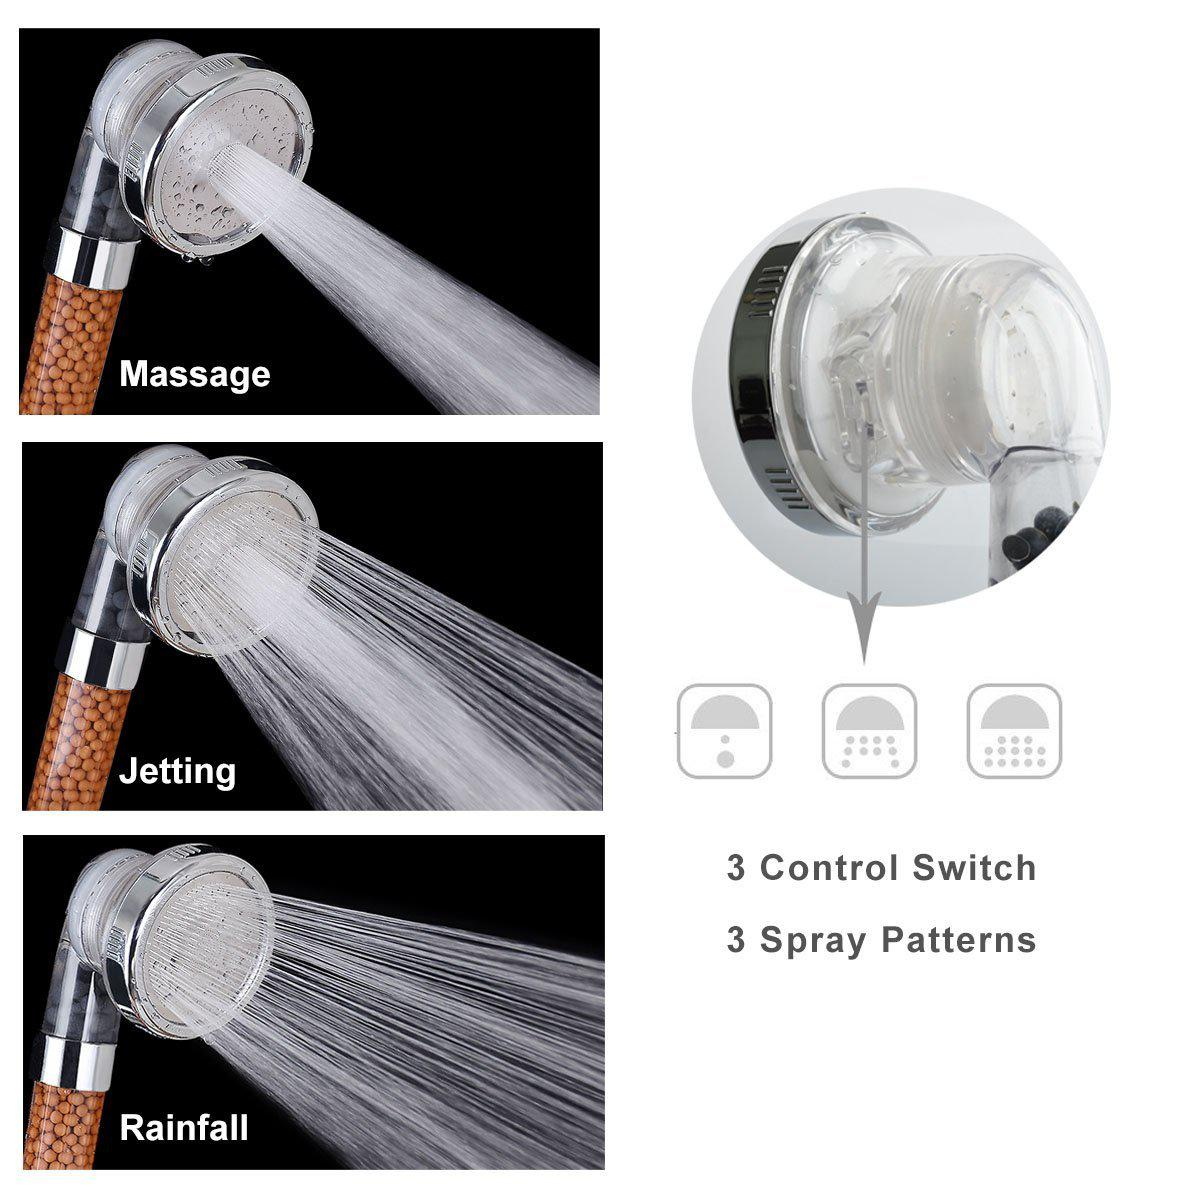 The Misugi - 3 Mode High Pressure Shower Bath Head (US standard size hose) - Awesales